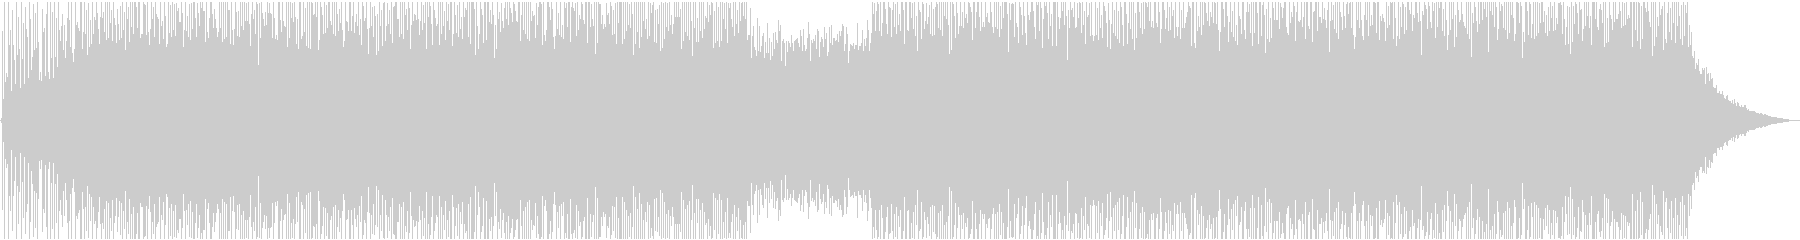 Cool and exhilarating opening's unreproduced waveform